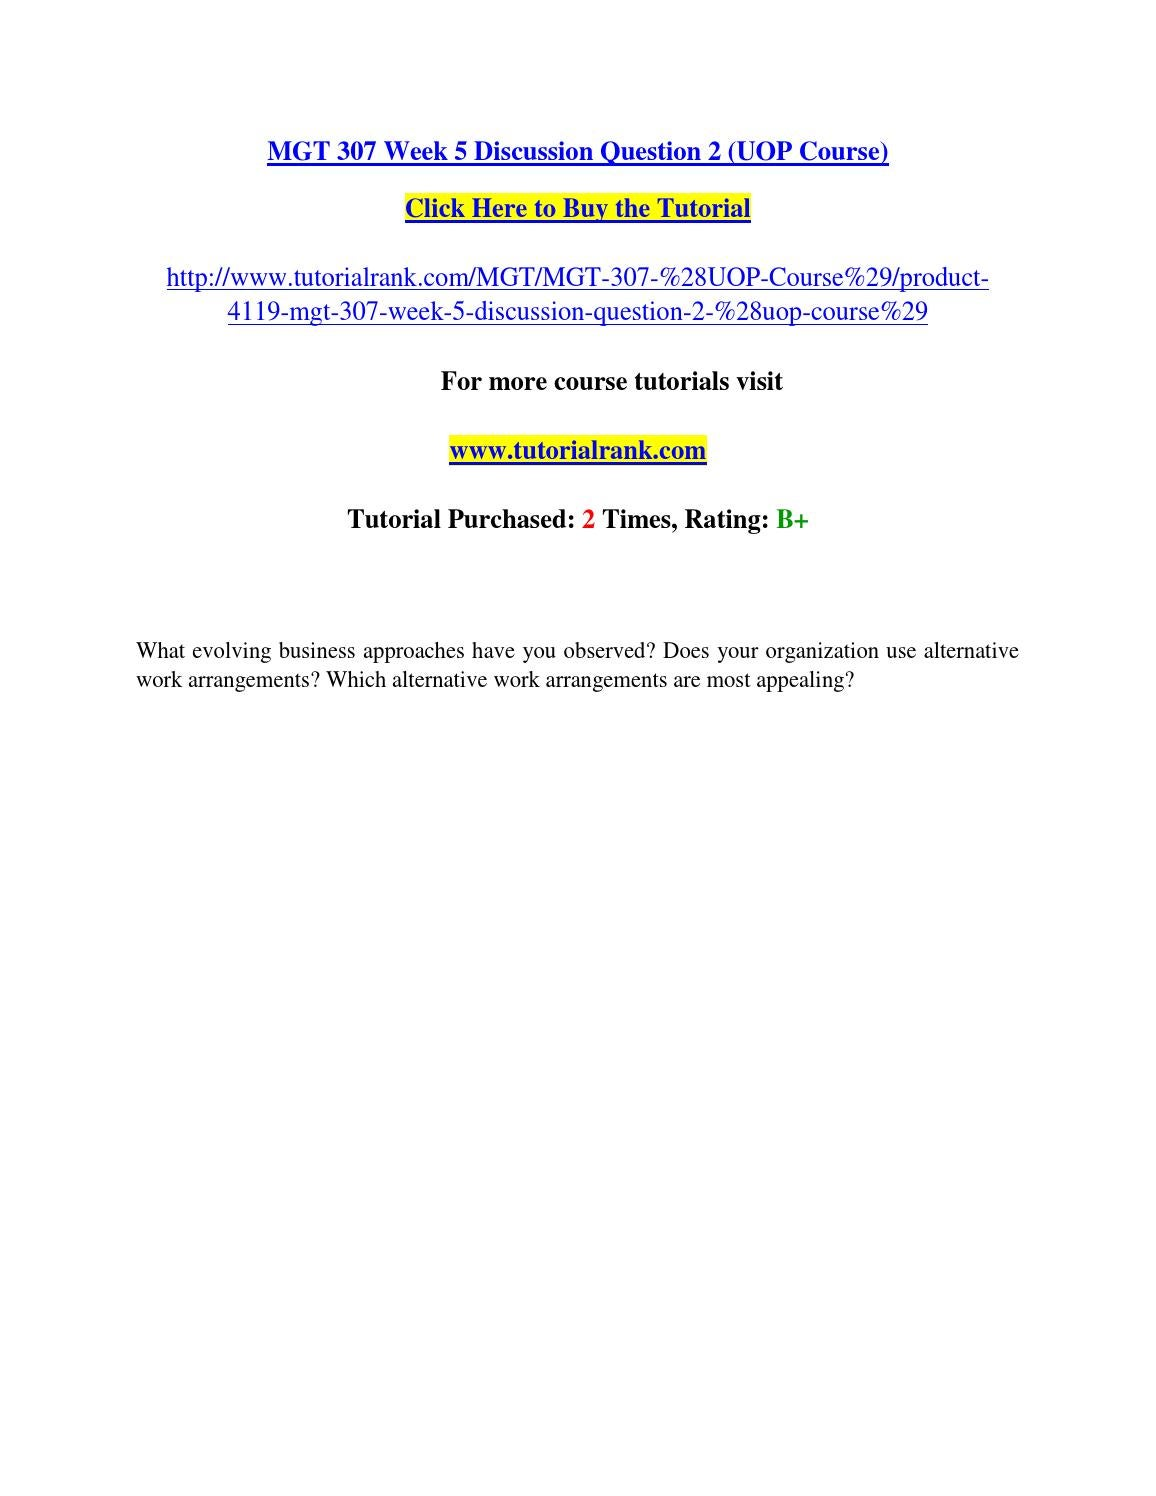 MGT 415 Group Behavior in Organizations Entire Course